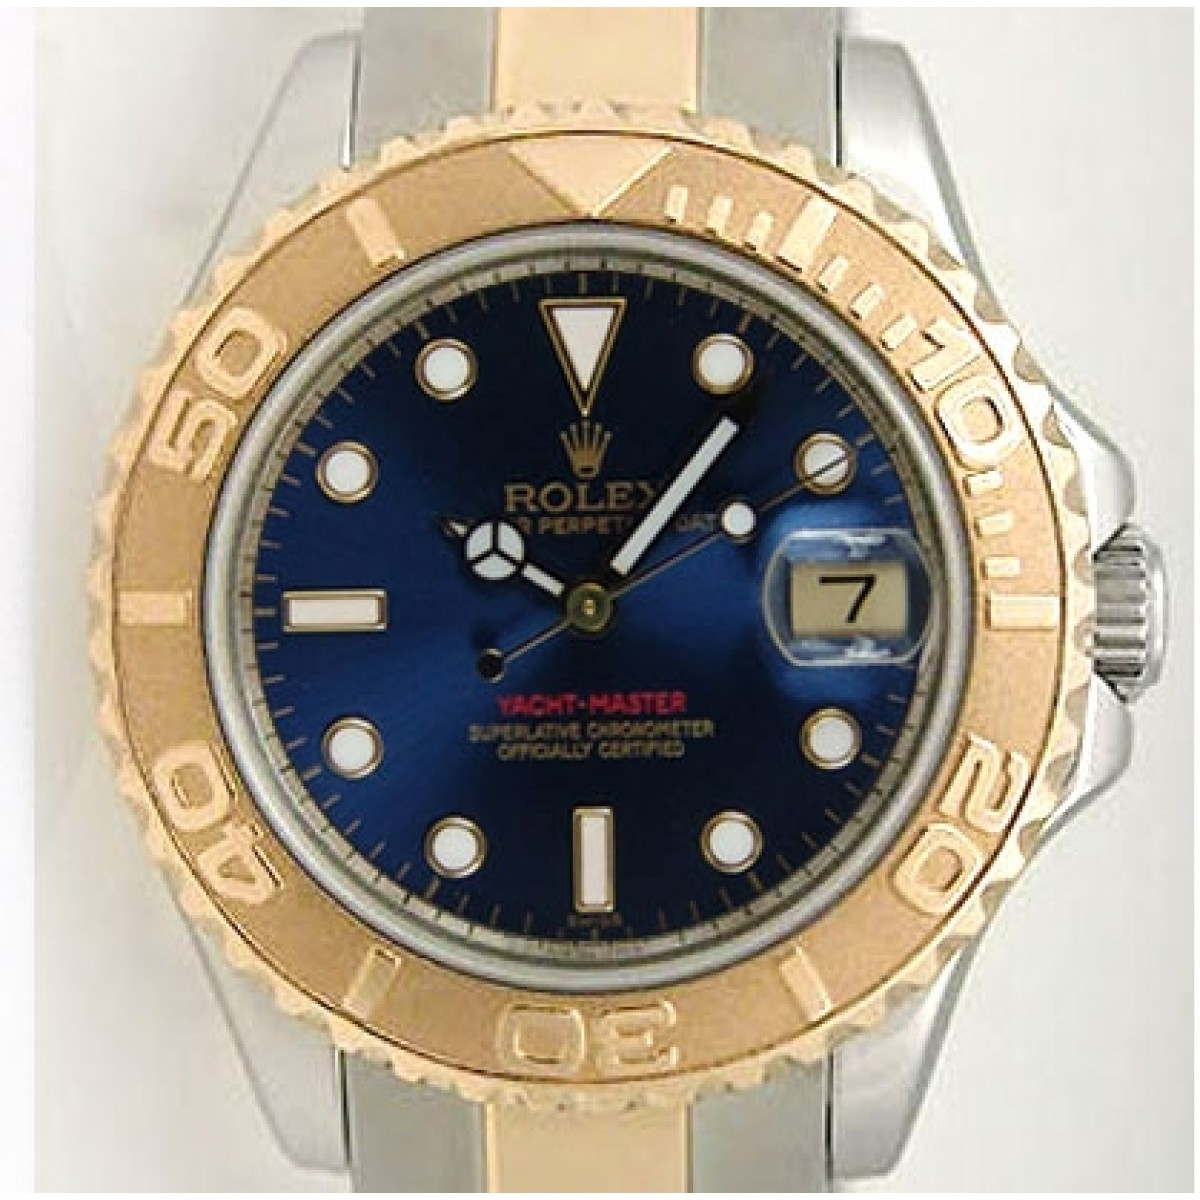 Rolex Yachtmaster 168623 Steel and Gold Mid,Size Blue Face